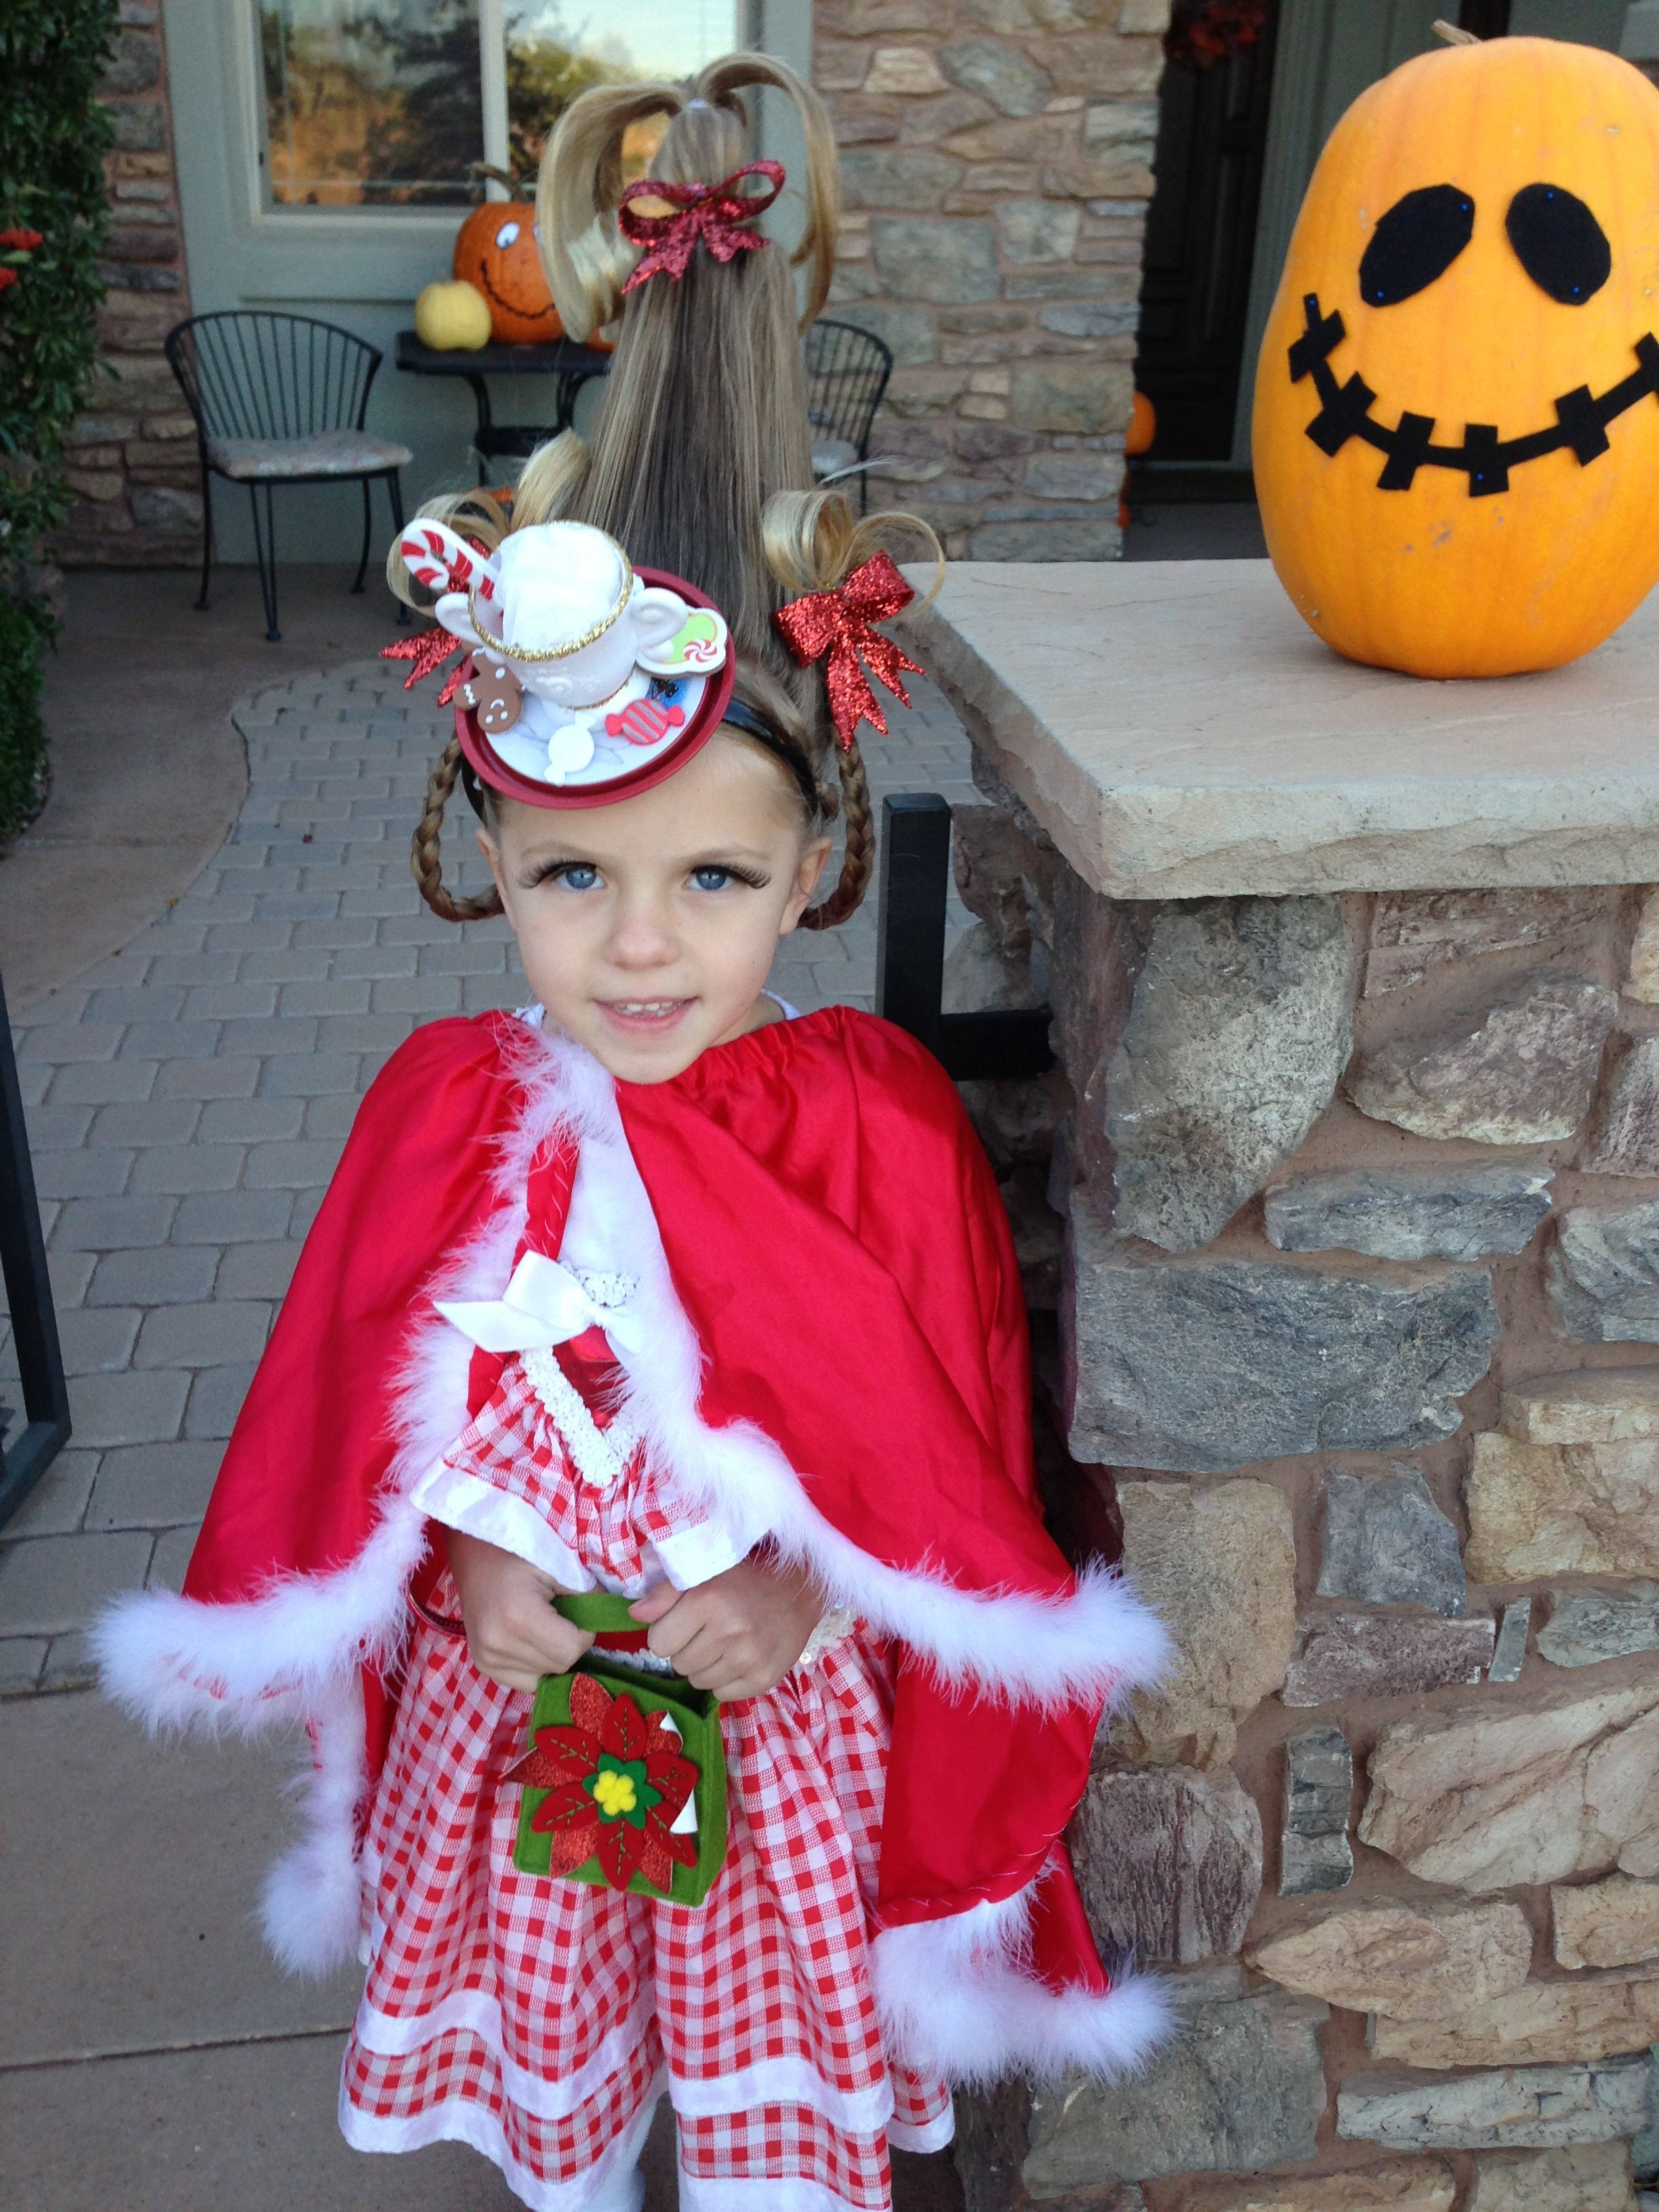 Cindy Lou Who Halloween Costume | Halloween | Pinterest ... Ugly Christmas Sweater Party Funny